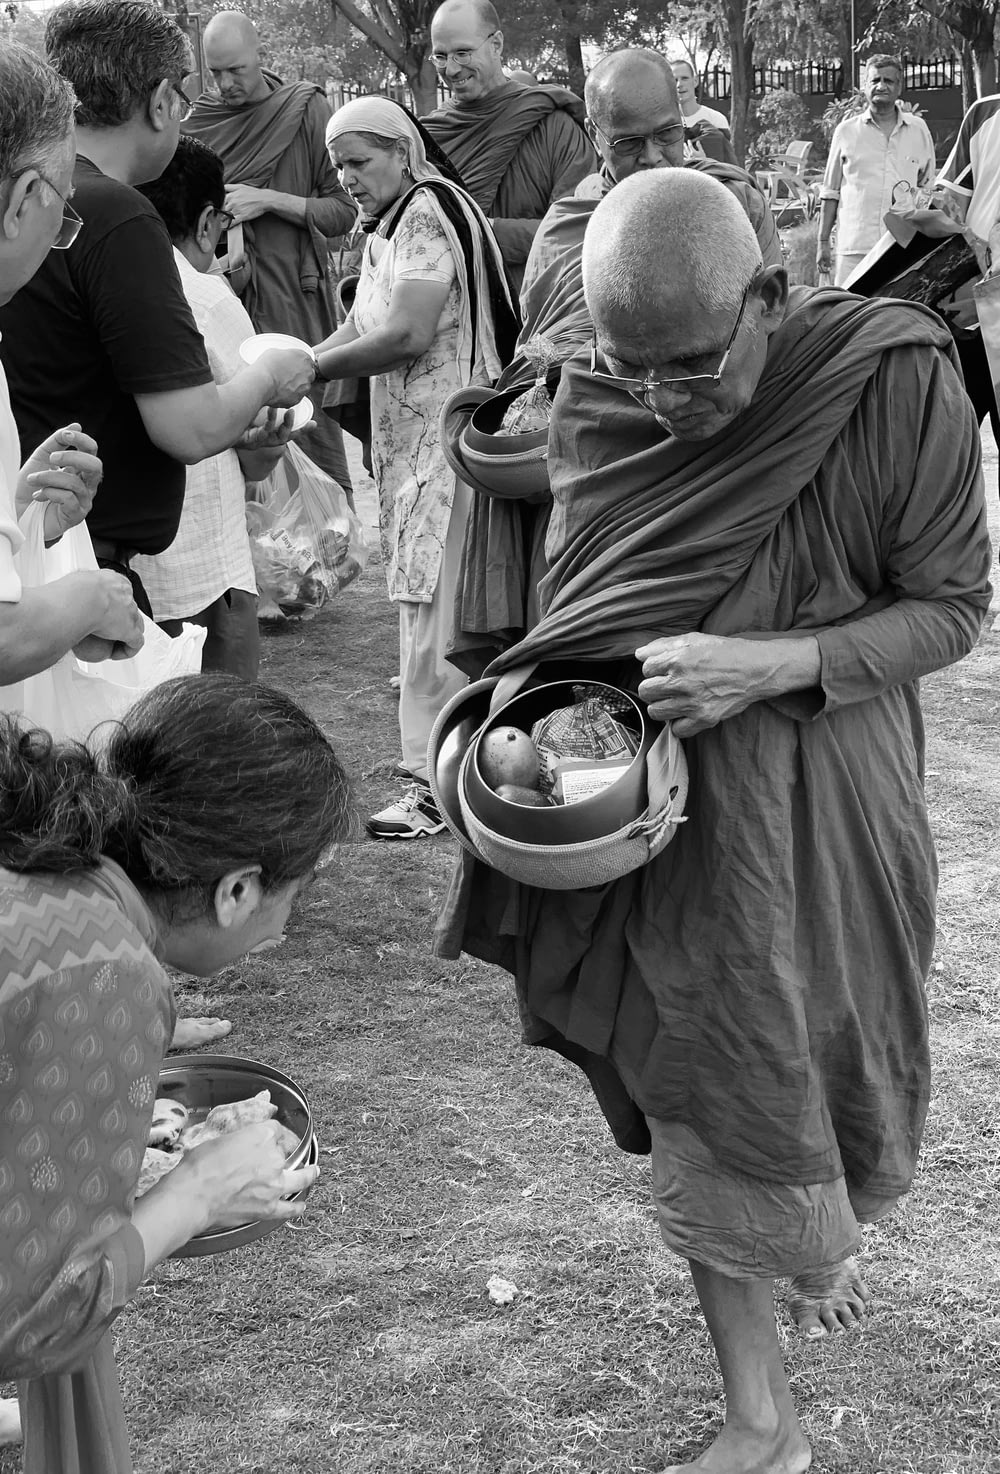 grayscale photo of man holding bowls beside woman